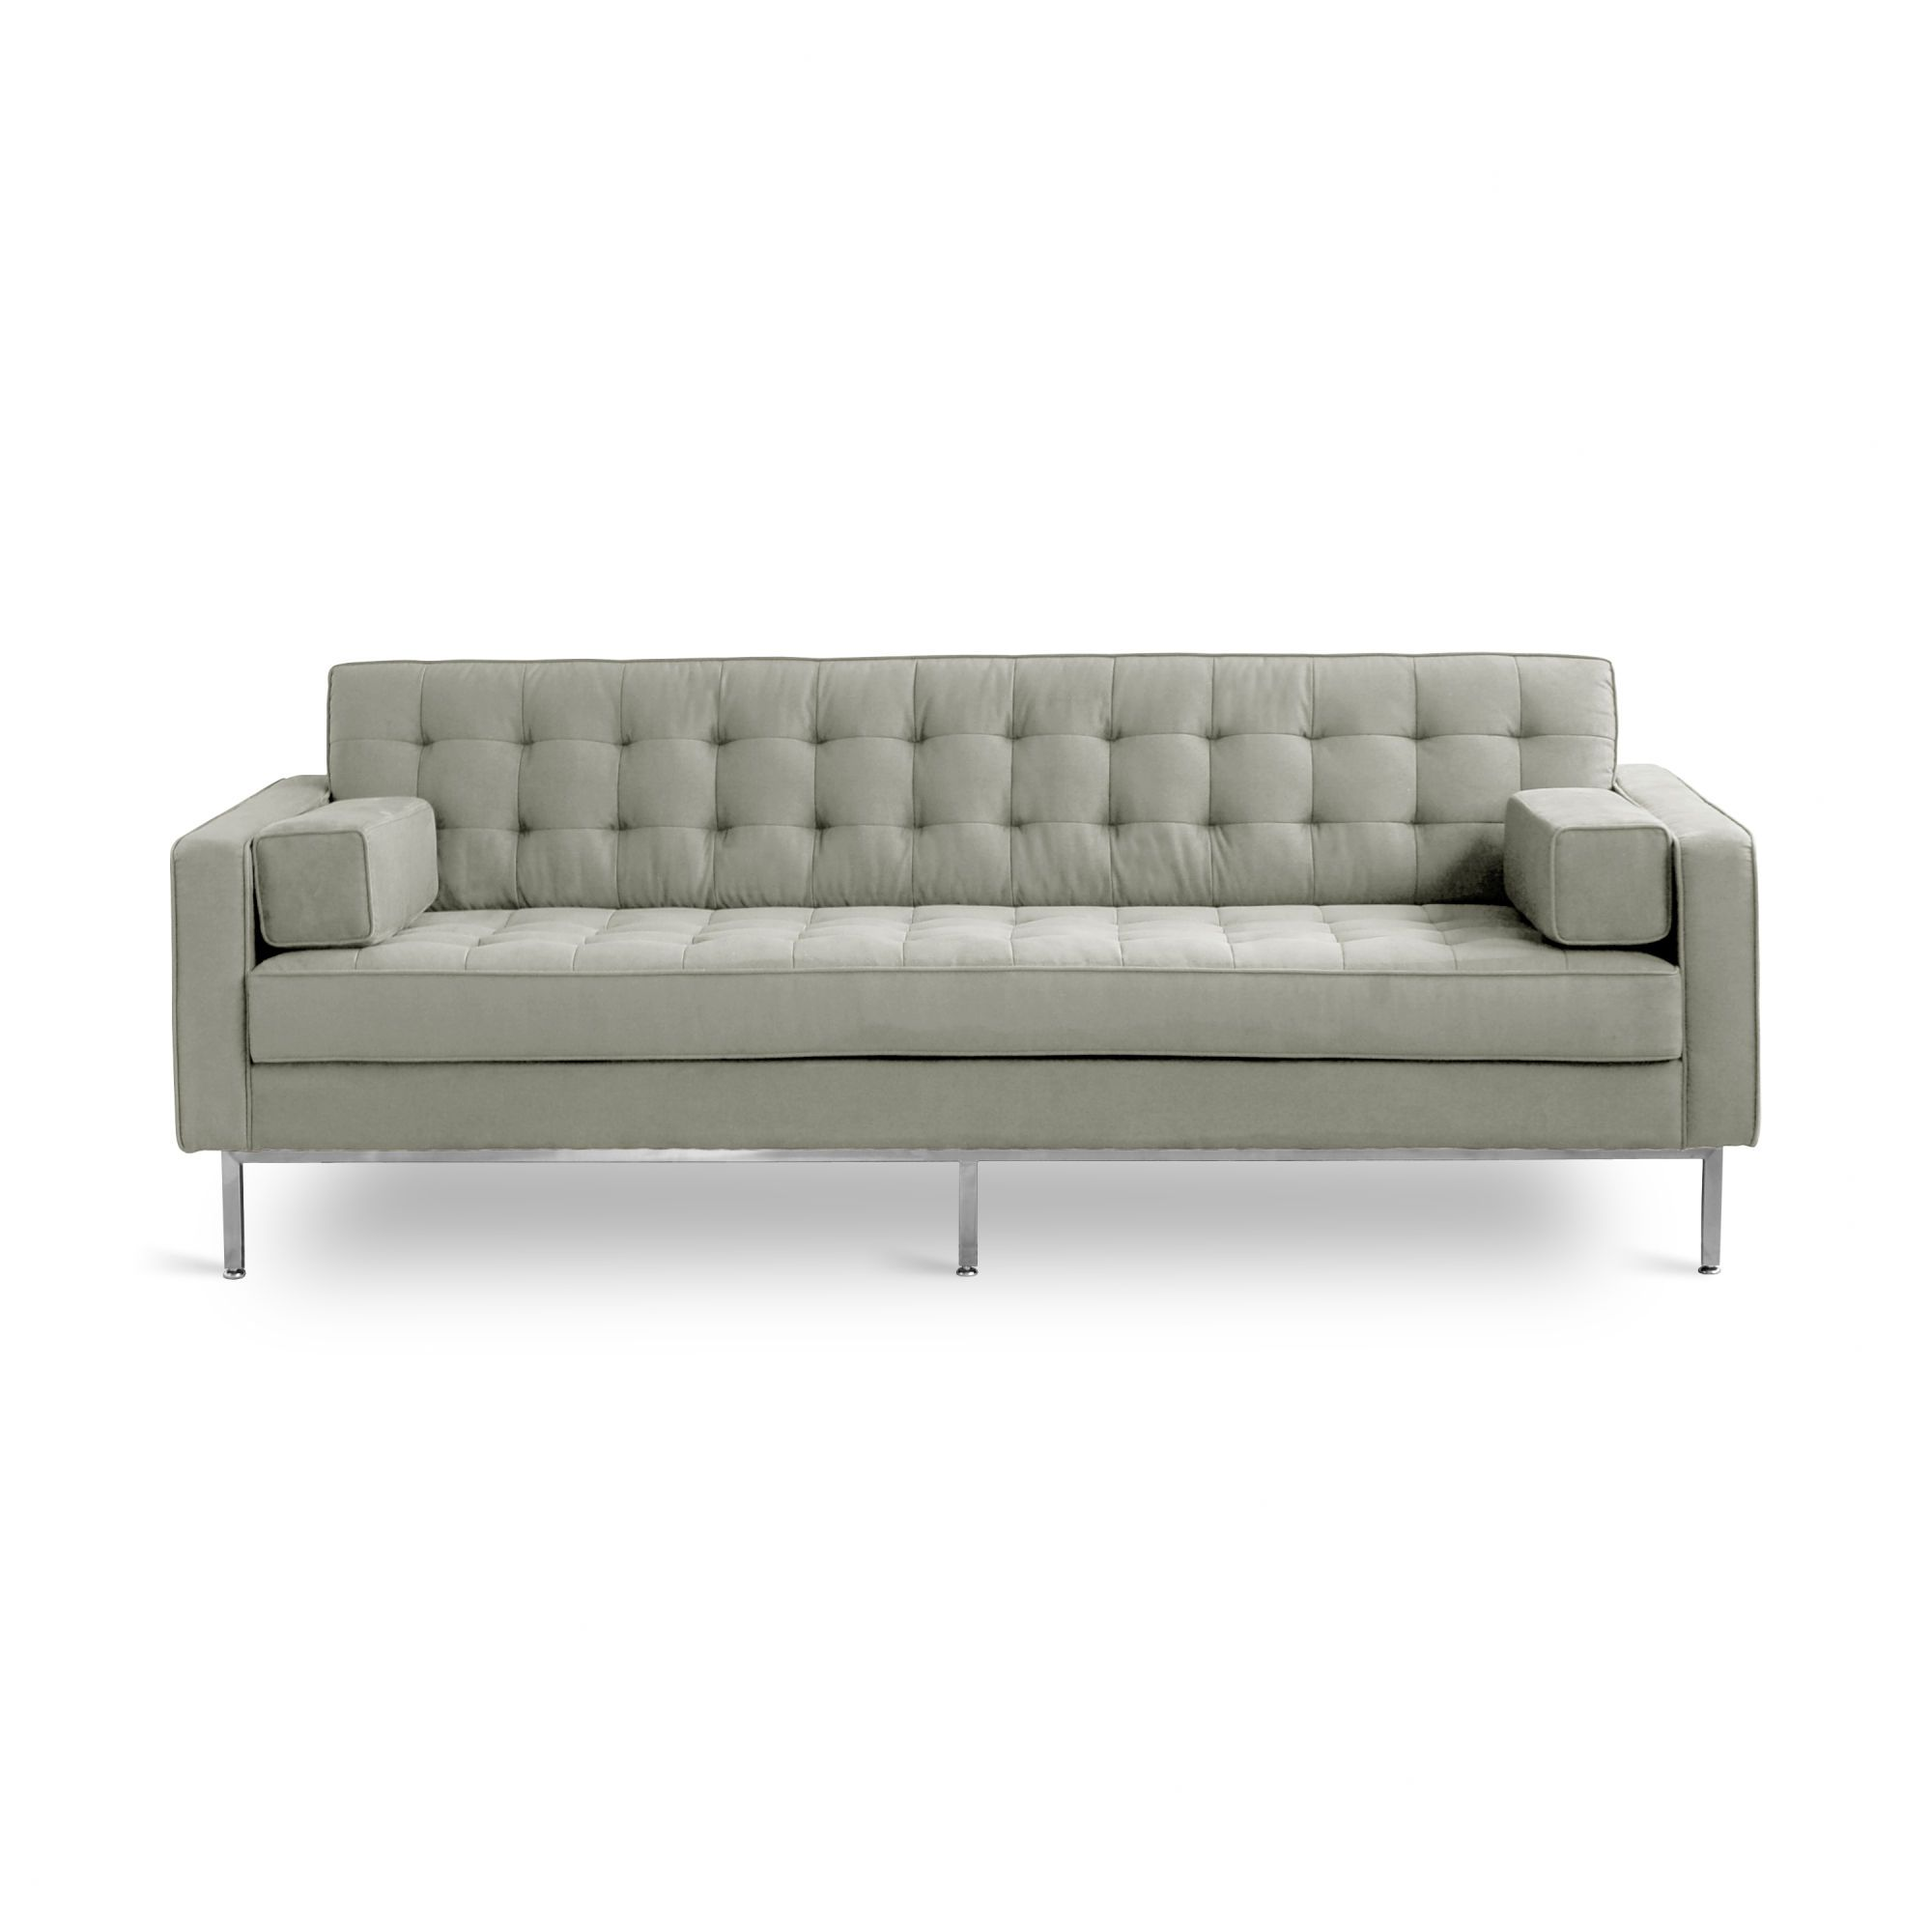 single cushion sofa pros and cons karlstad grey cover spencer seat cushions modern living rooms